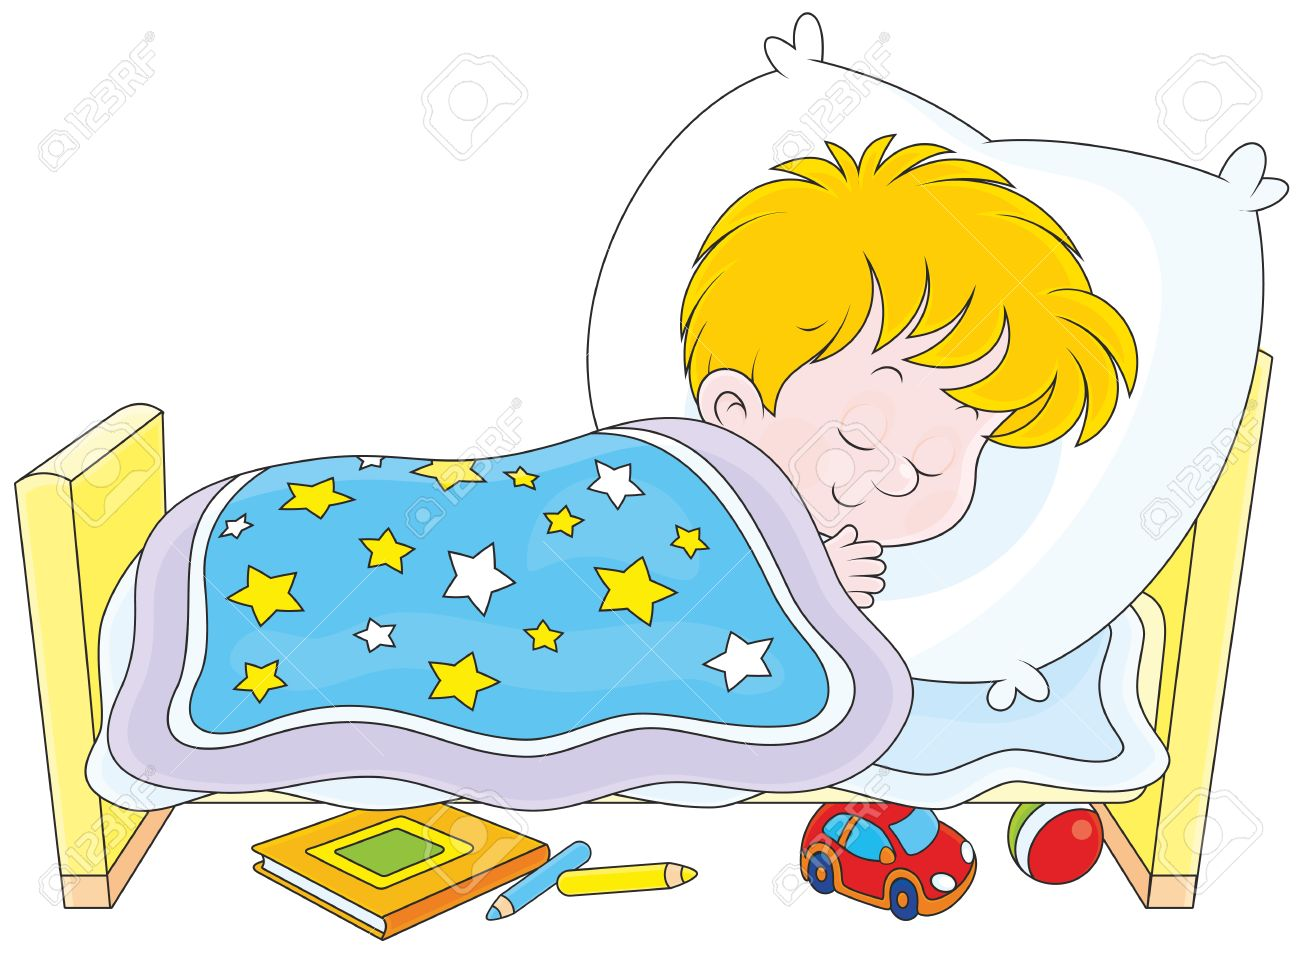 Kids sleeping clipart graphic black and white download Sleeping kid clipart 4 » Clipart Station graphic black and white download